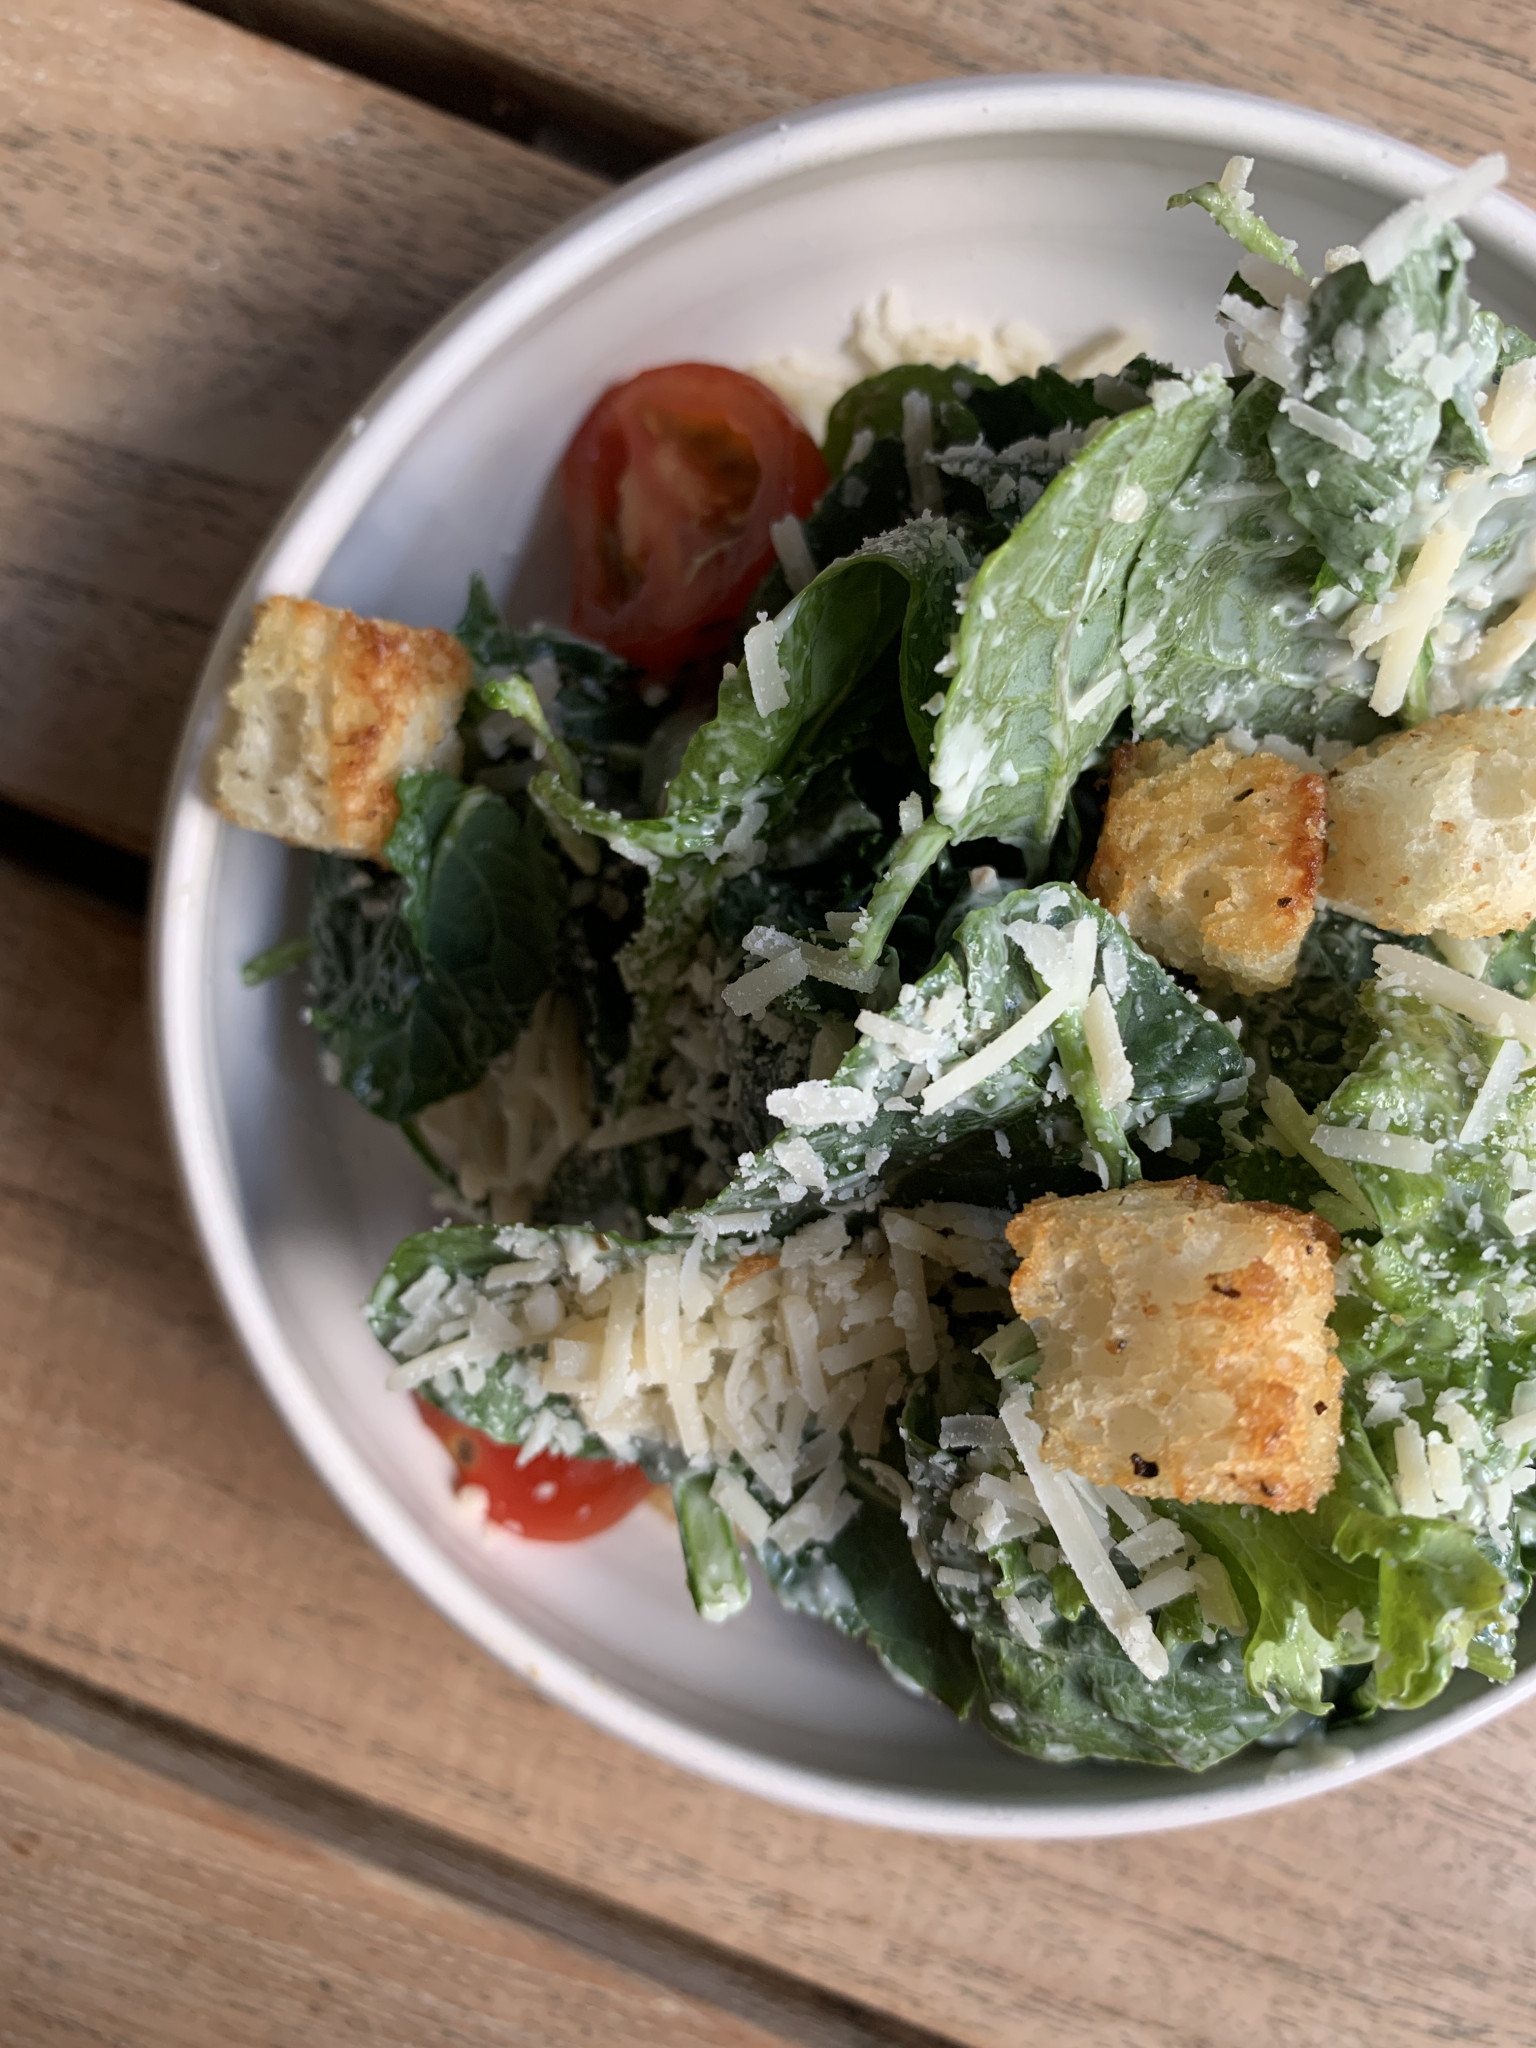 A Caesar salad on a white plate with large croutons and tomatoes